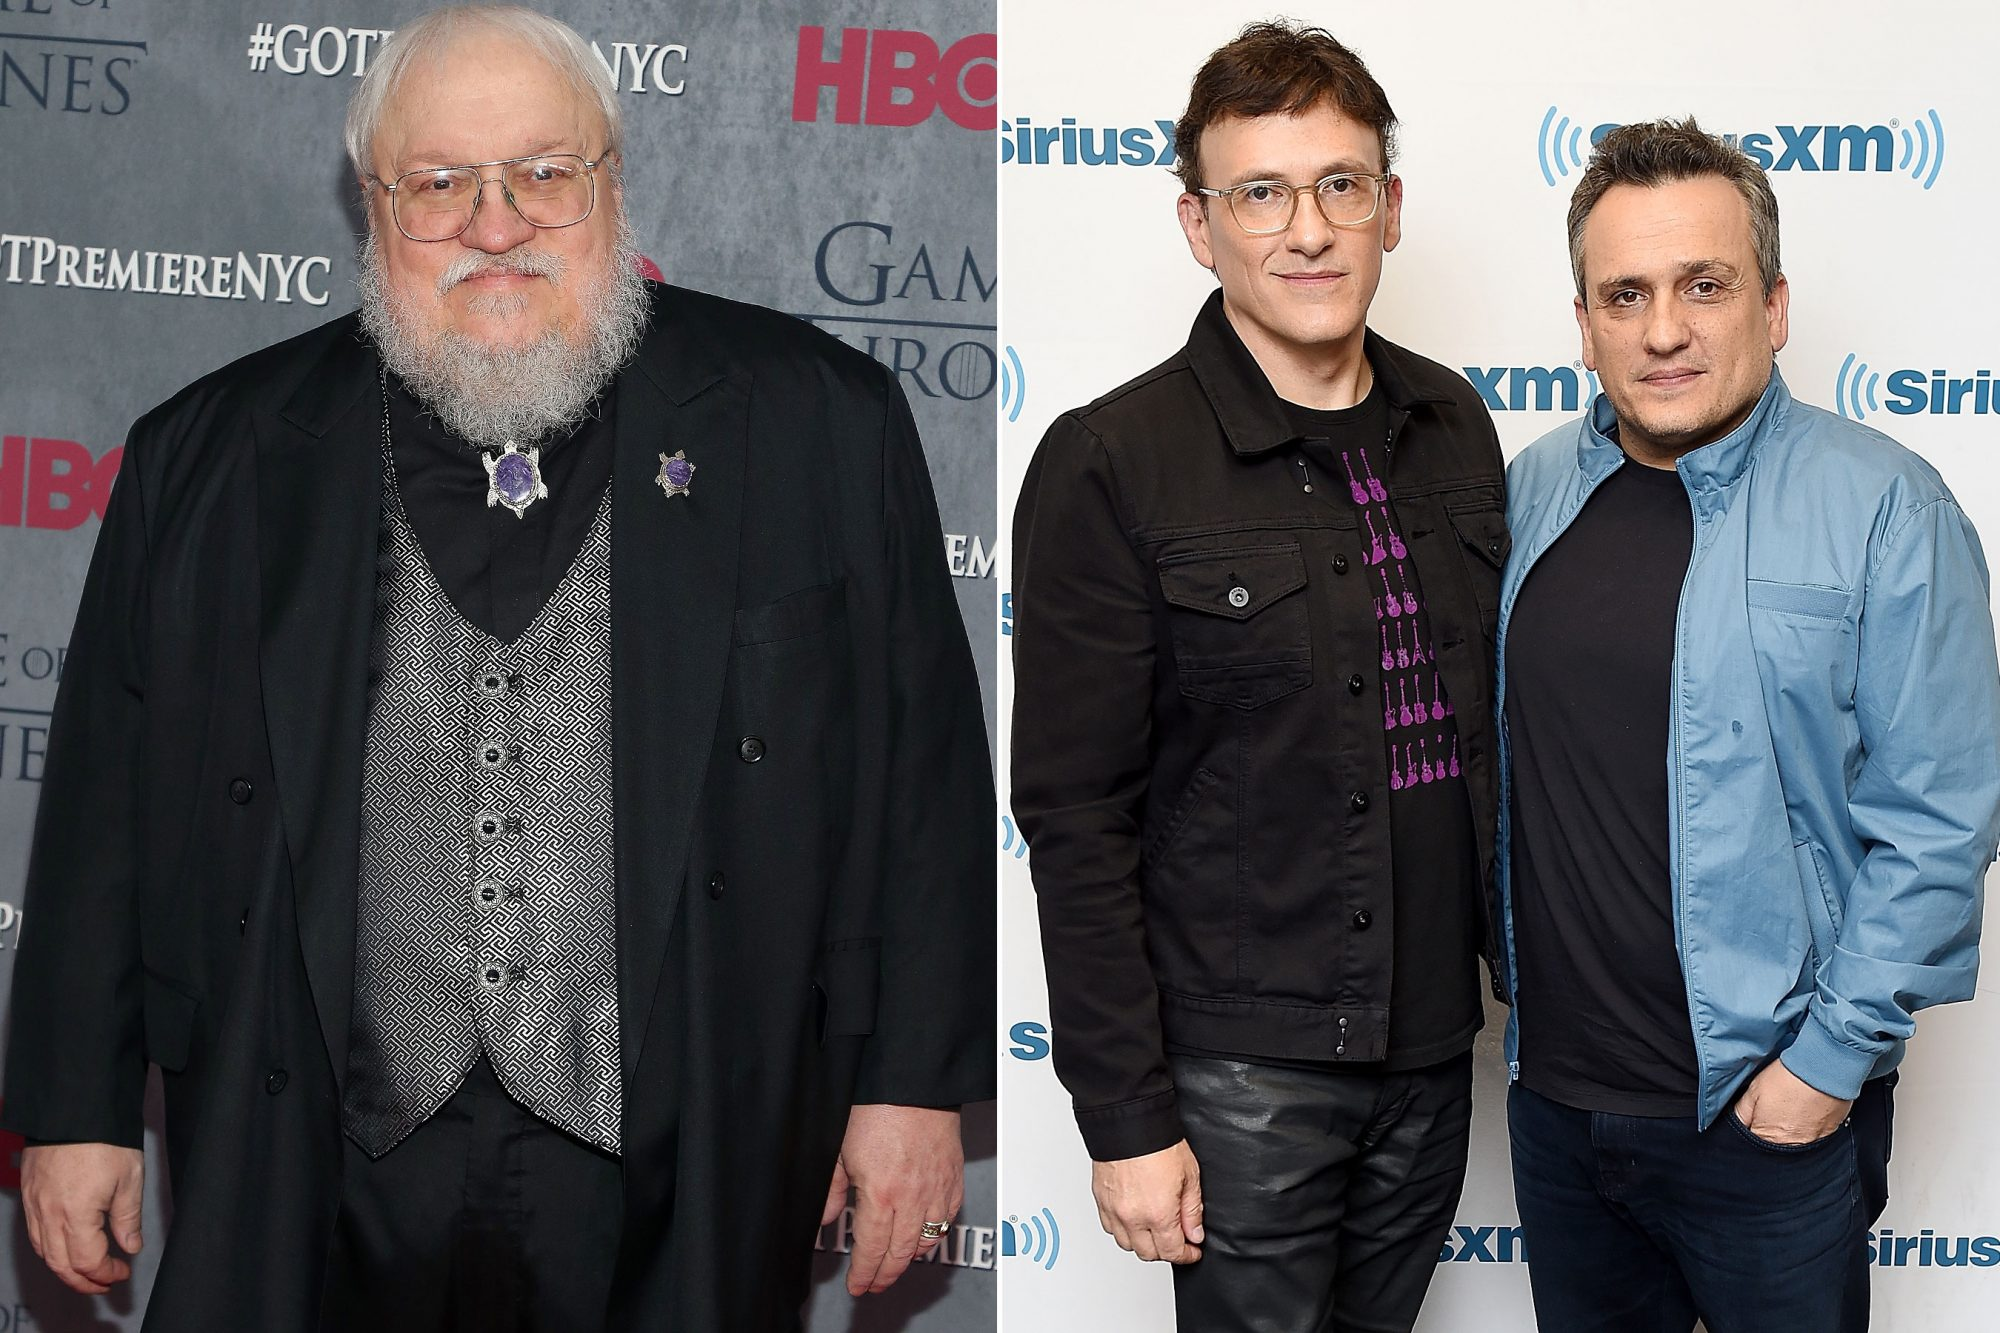 george-rr-martin-joe-anthony-russo